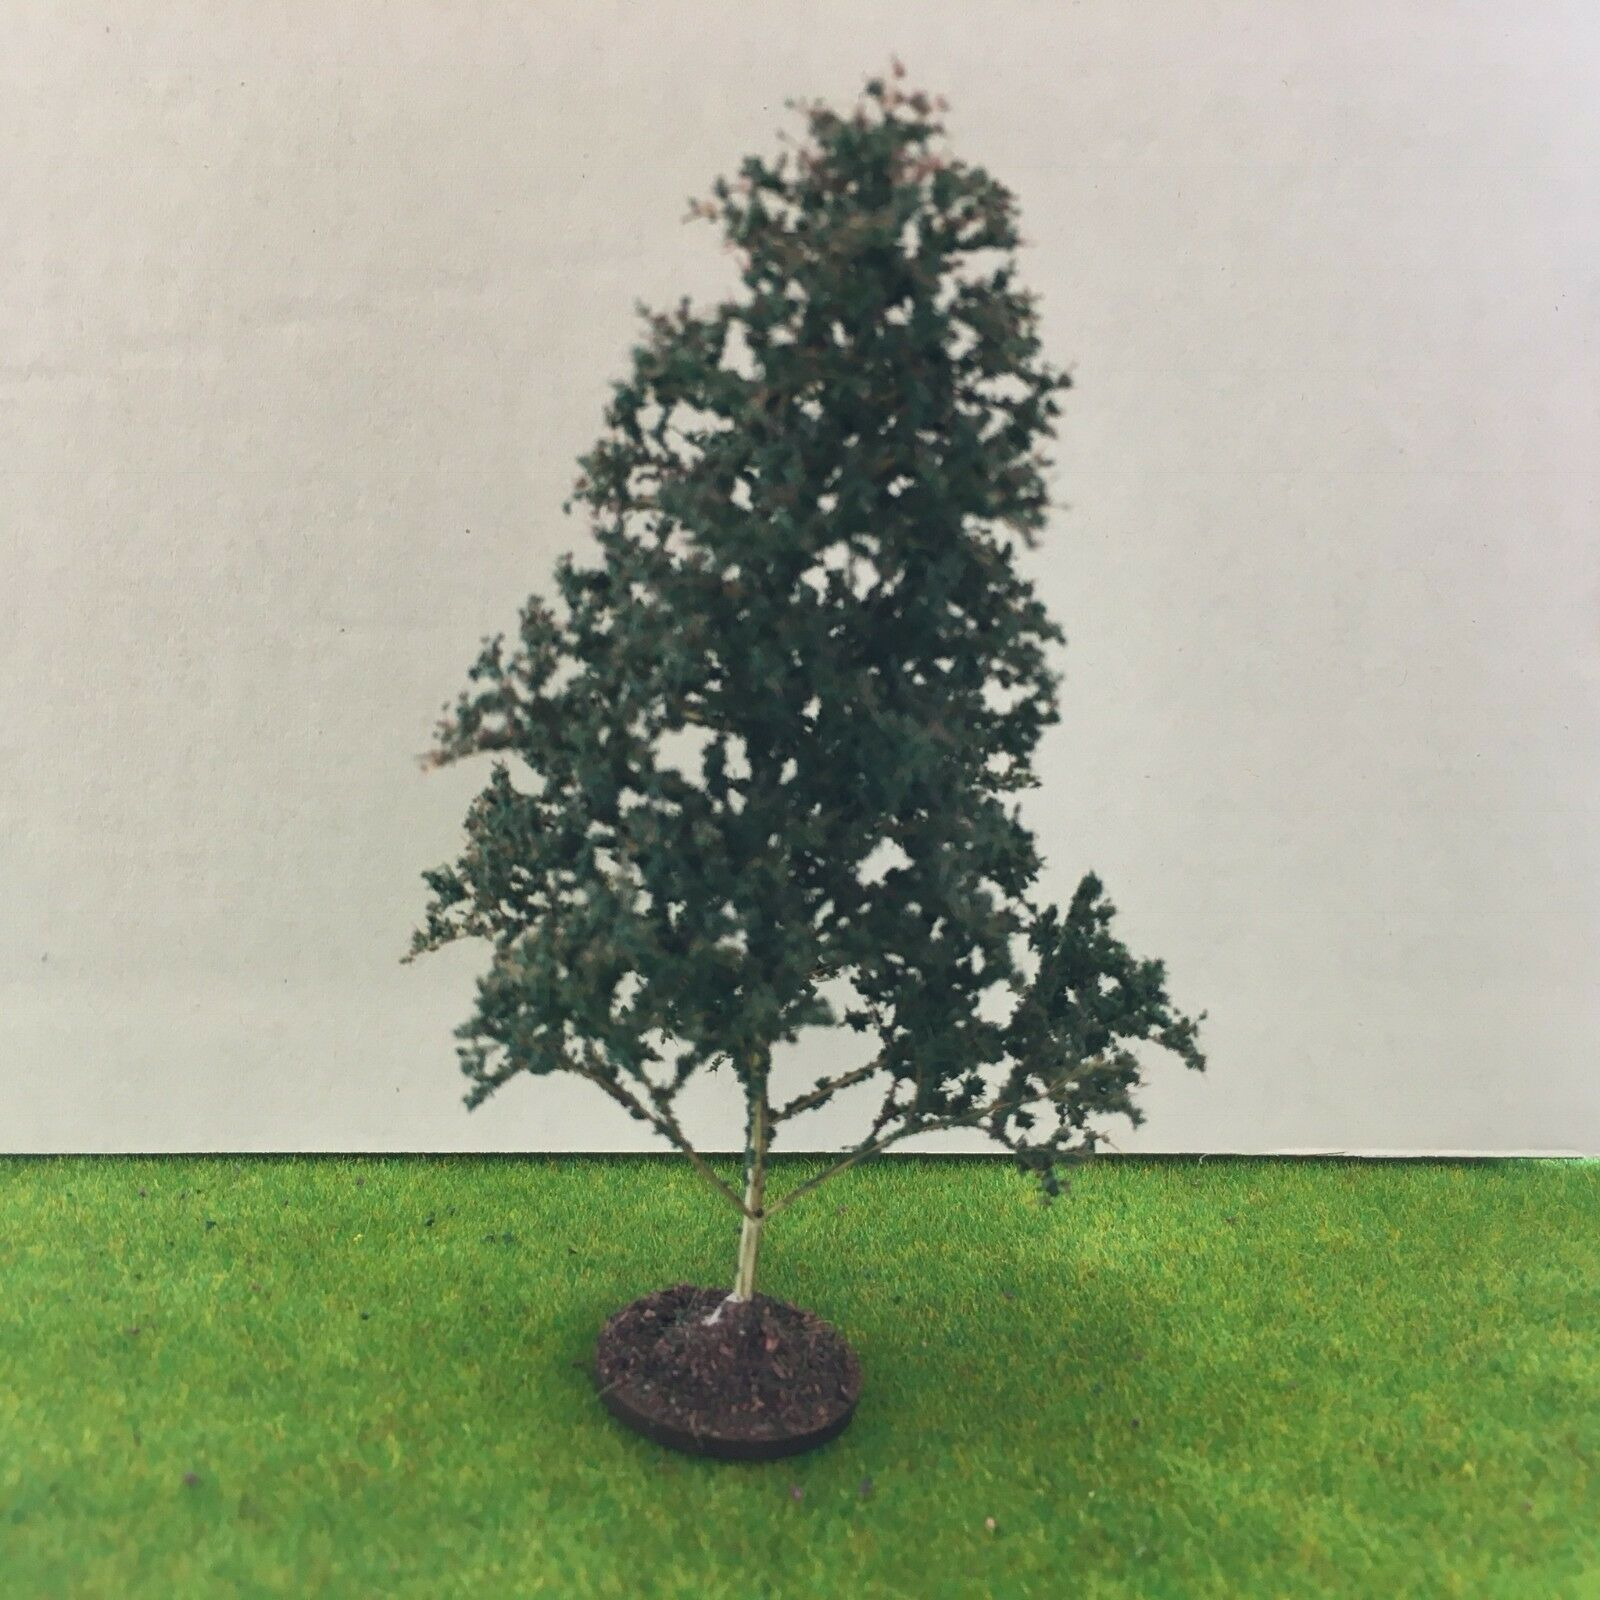 Dark Green Precision Trees 16-20cm- Seafoam  Model Scenery Railway Wargame Woods